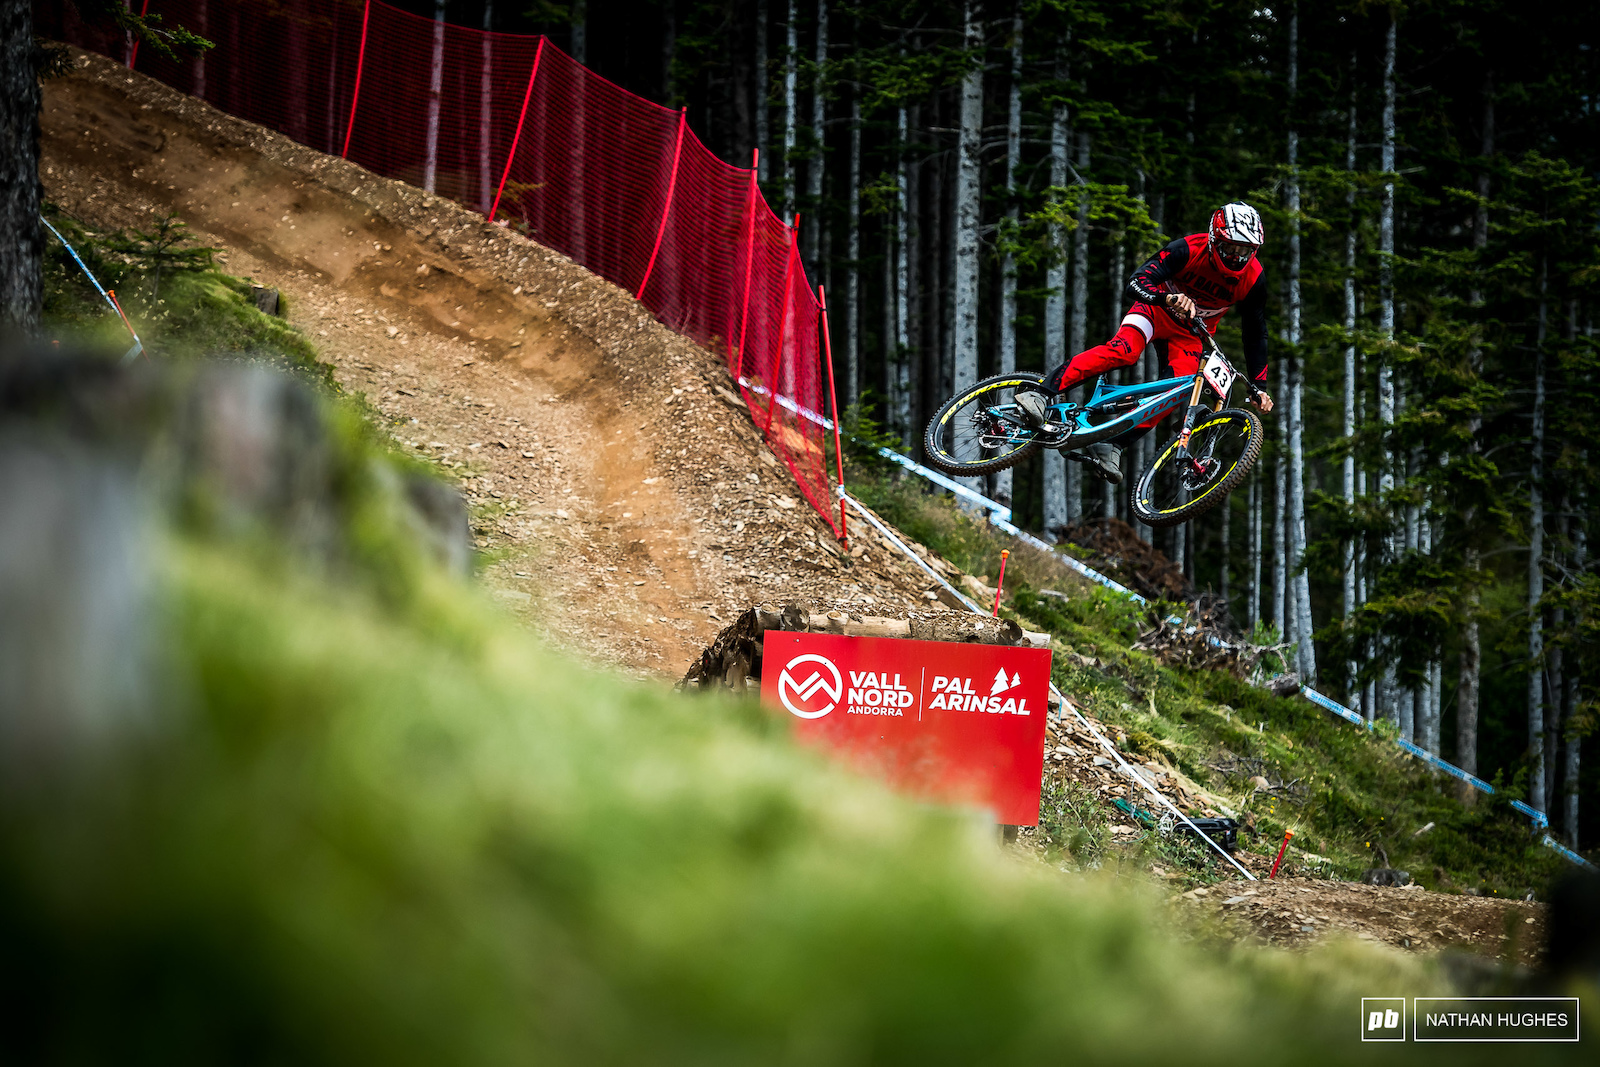 Eddy Masters is a due a decent score at World Cup any time now just as soon as he can catch a break.